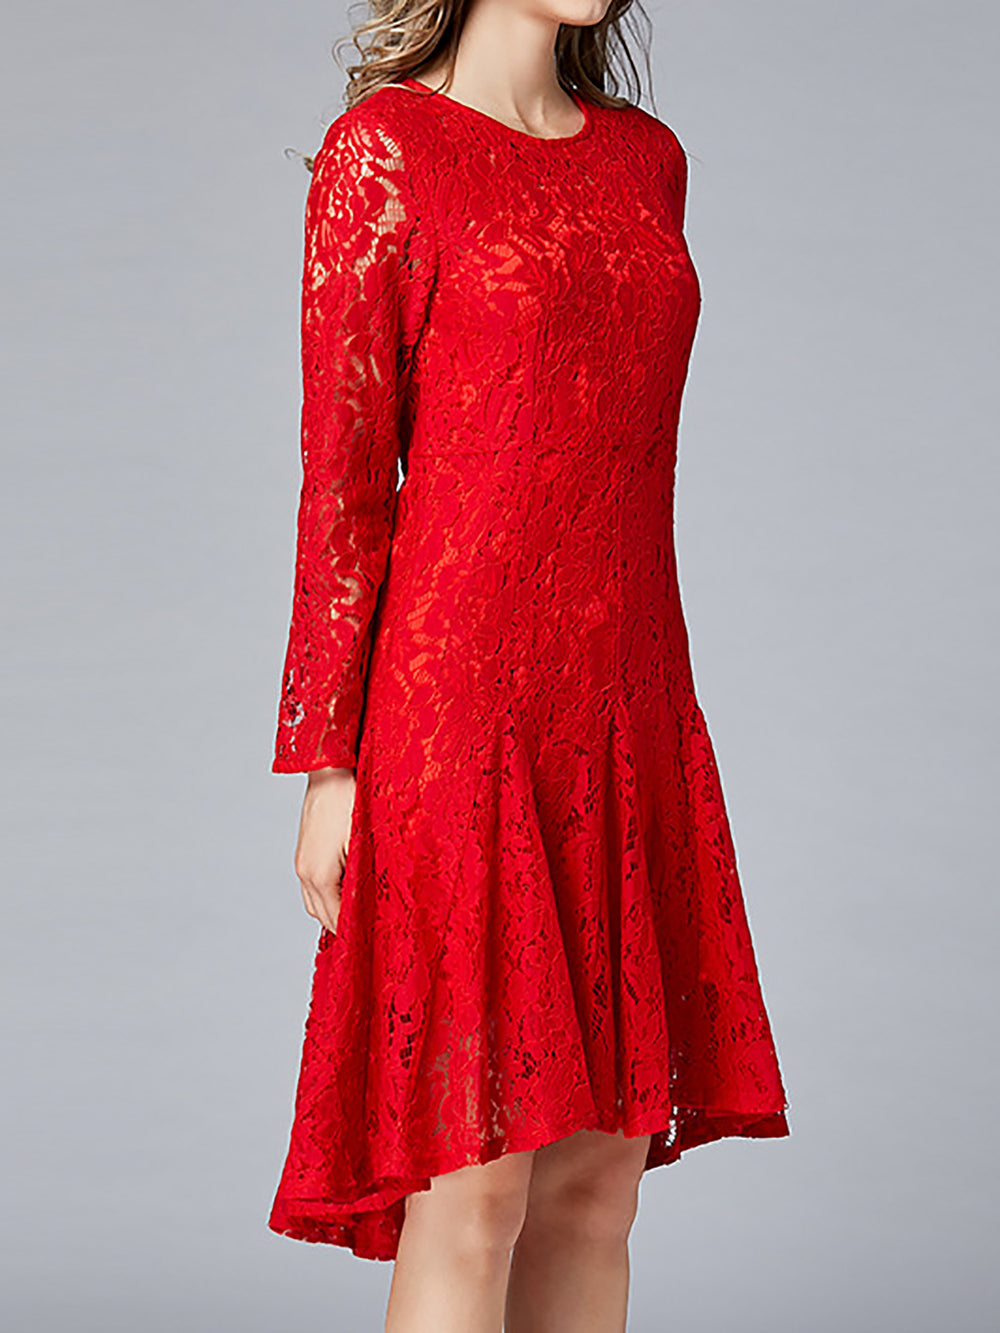 Red Flounce Date Sweet Long Sleeve Guipure Lace Cocktail Midi Dress